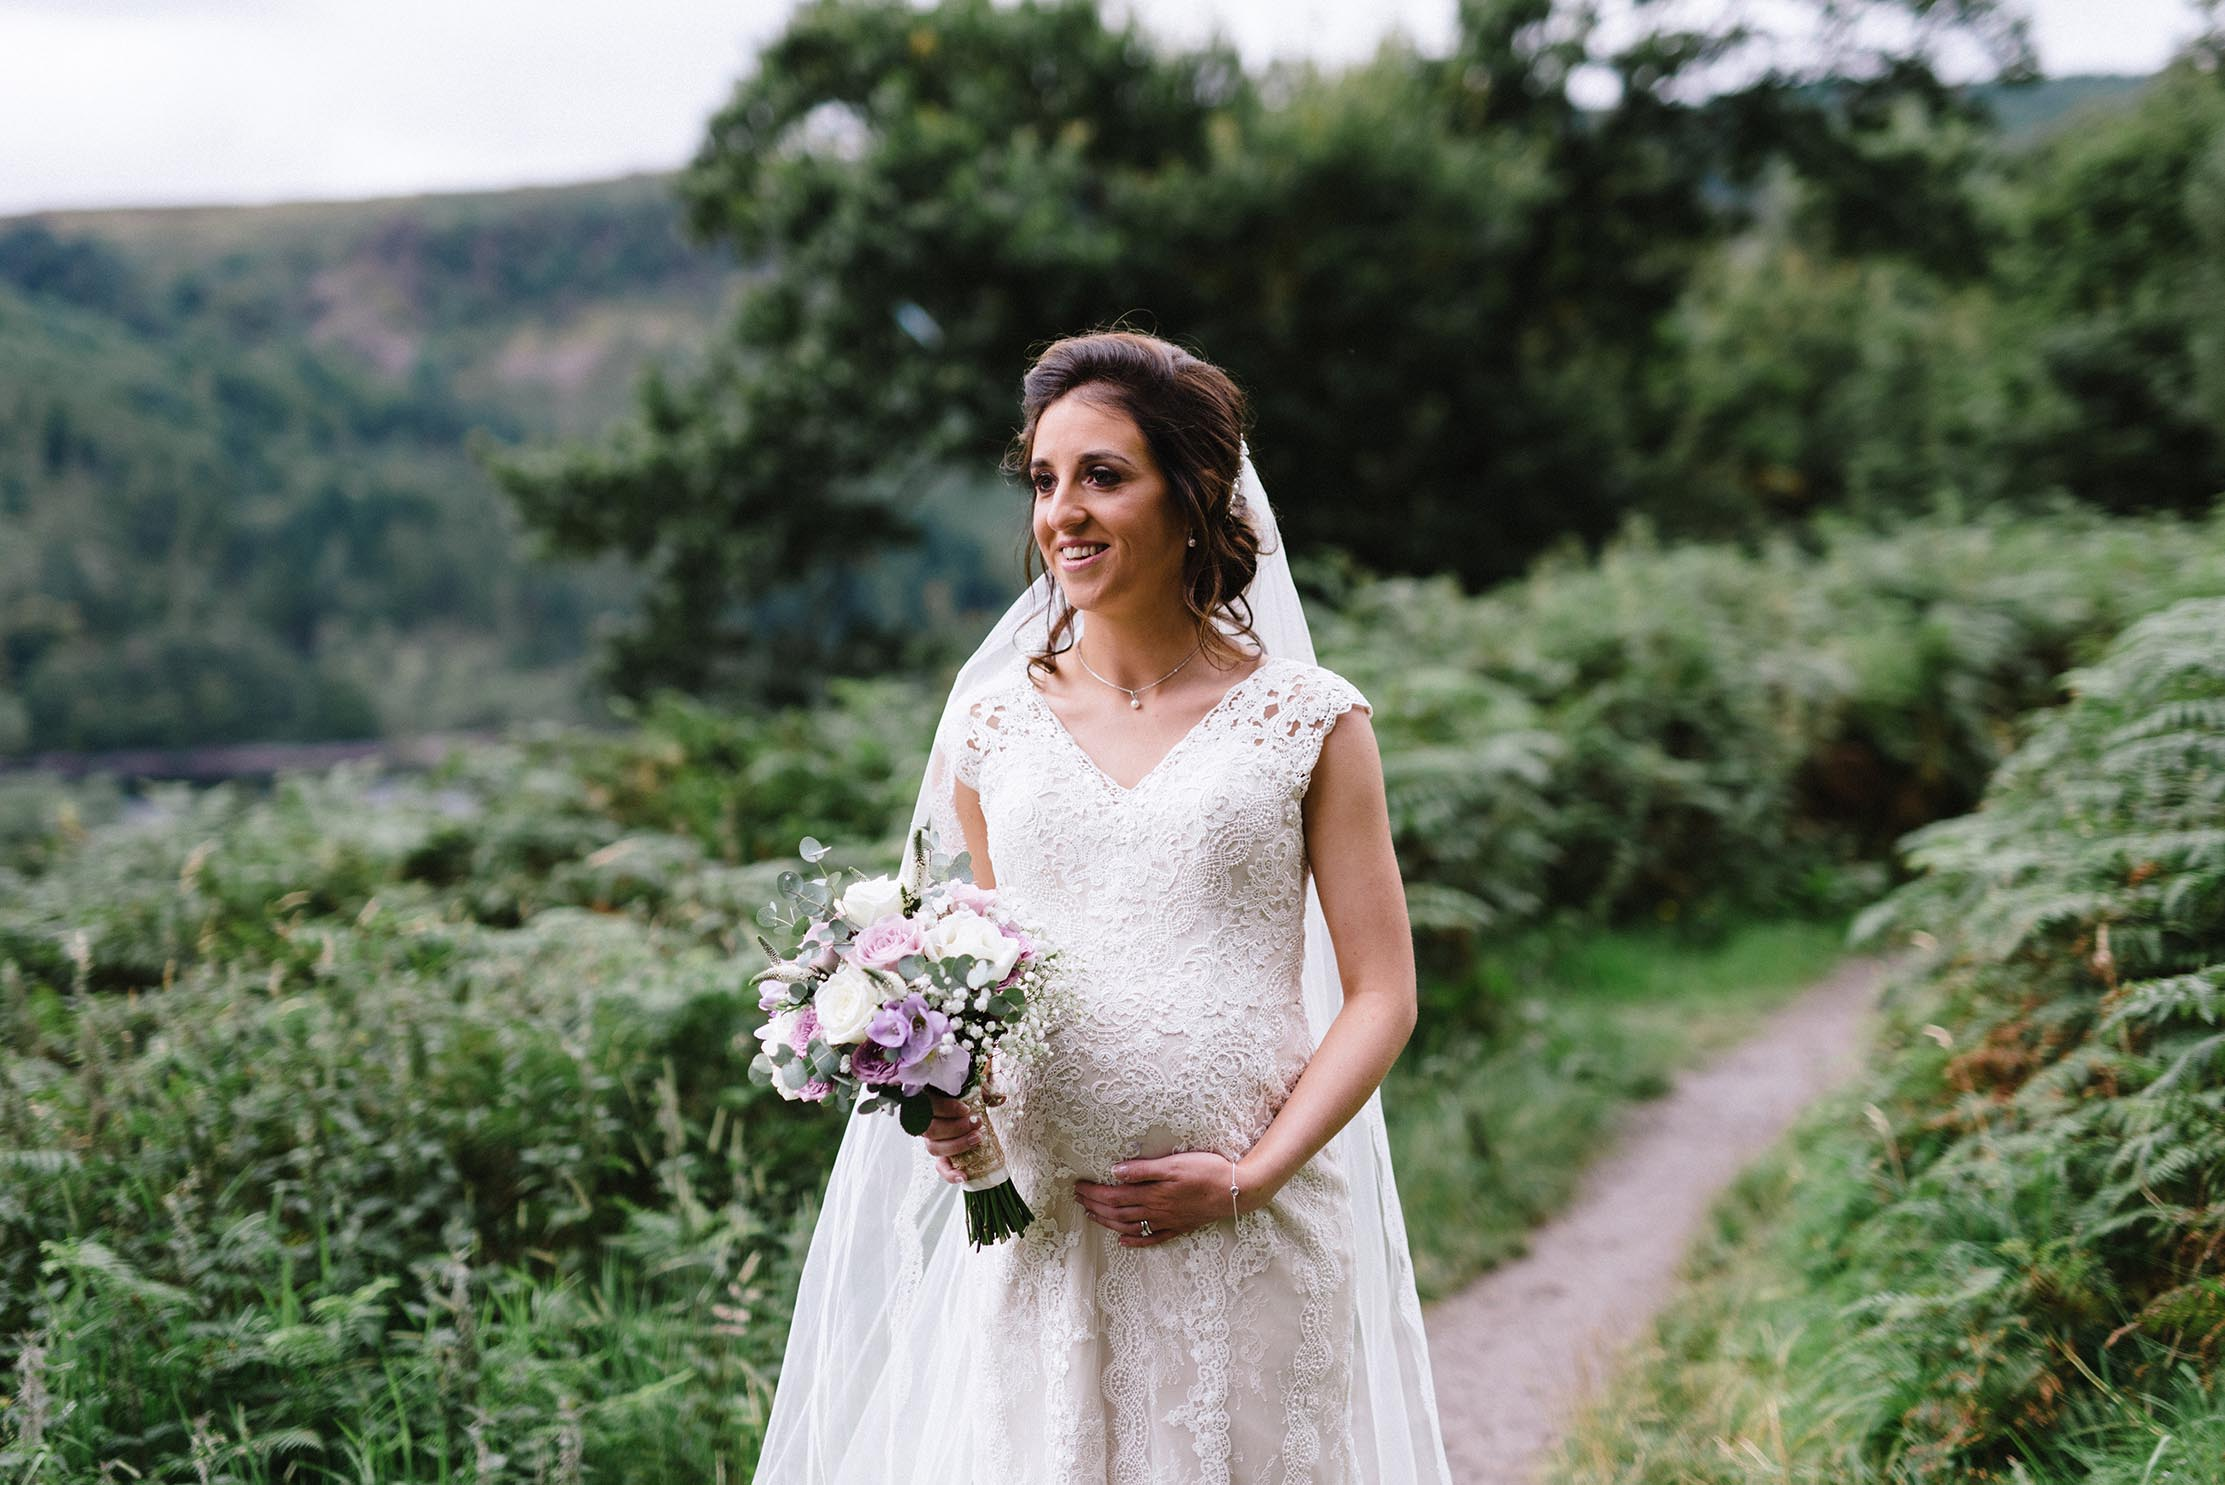 Weddings By Bethany Sunners bethanysunnersphotography (21).jpg